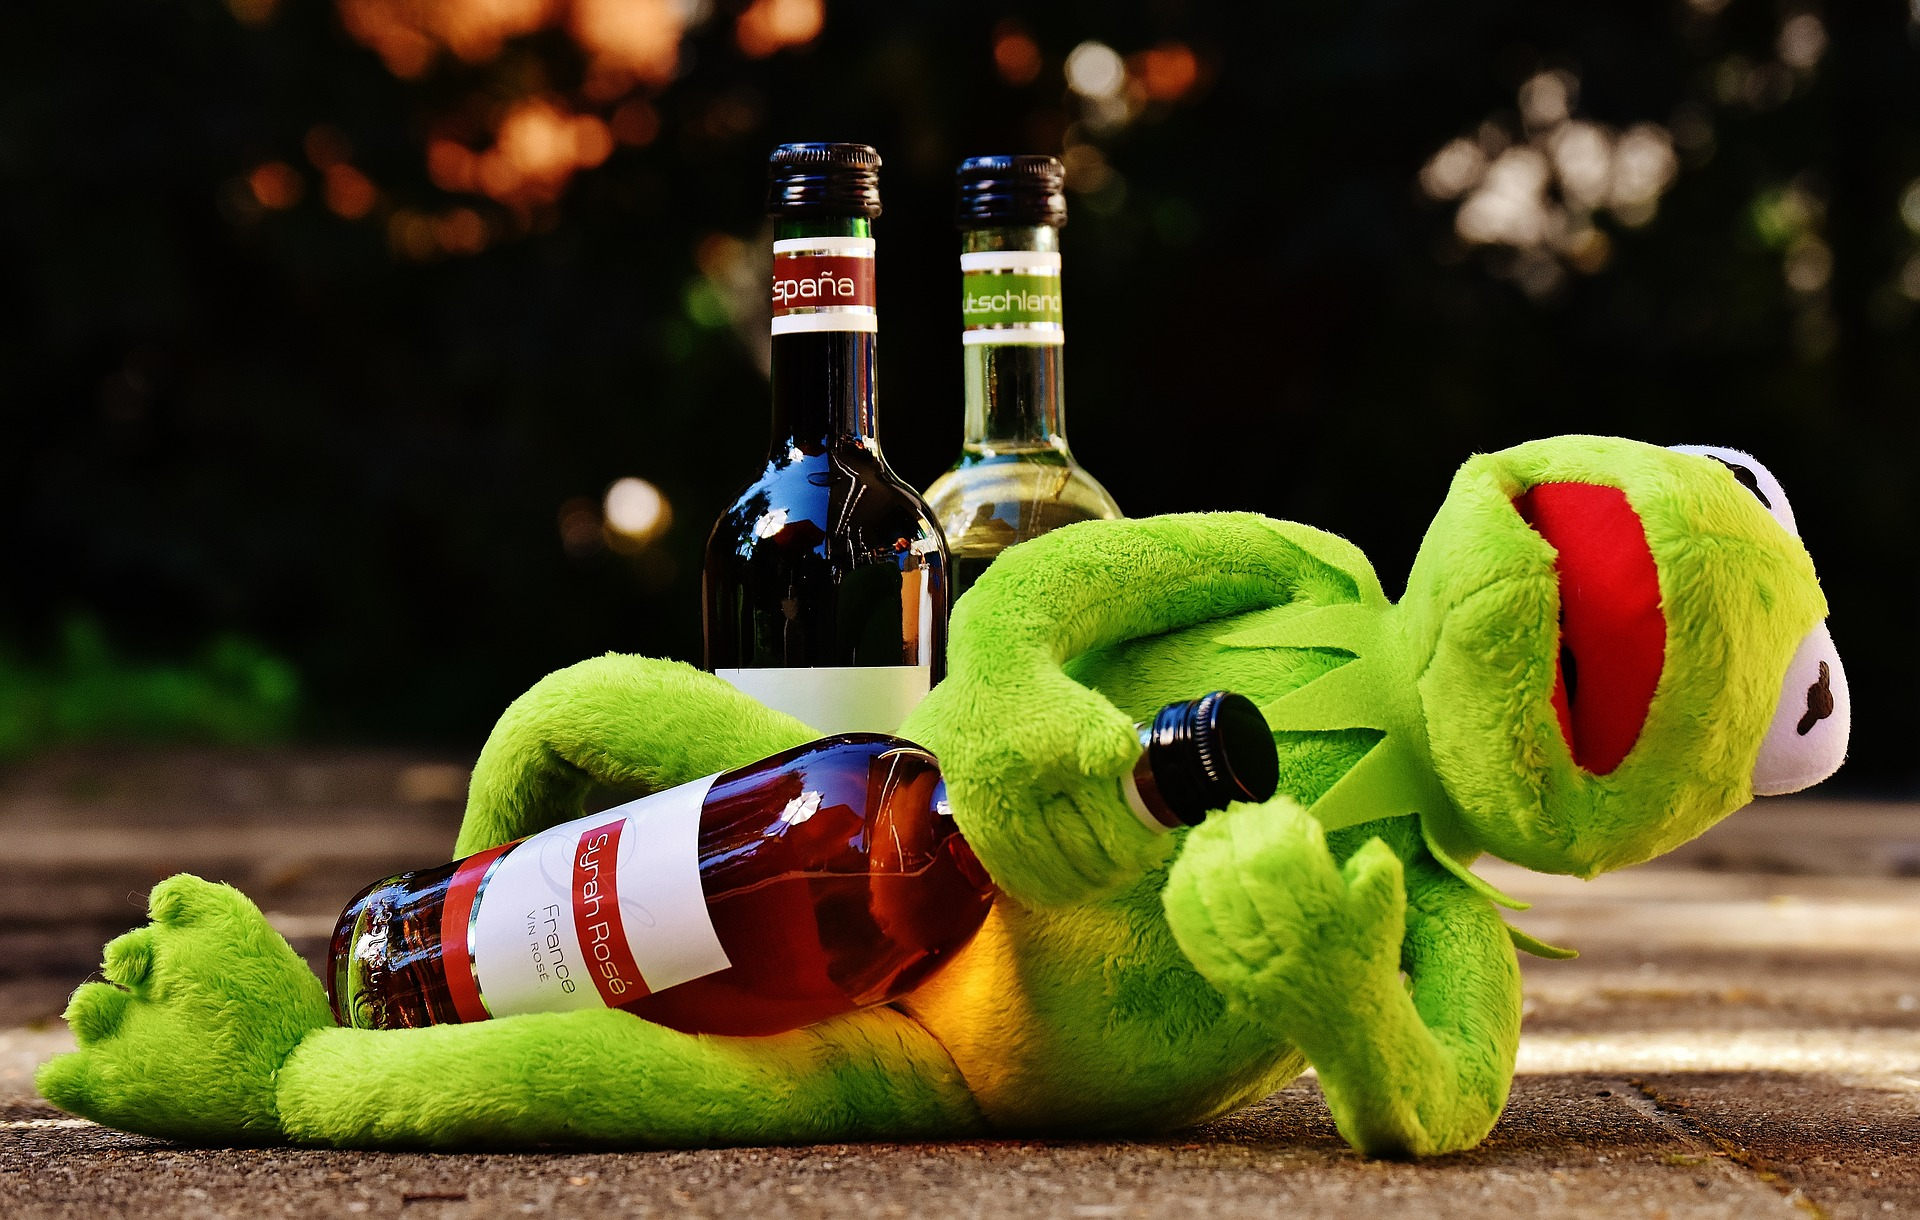 kermit drunk with alcohol